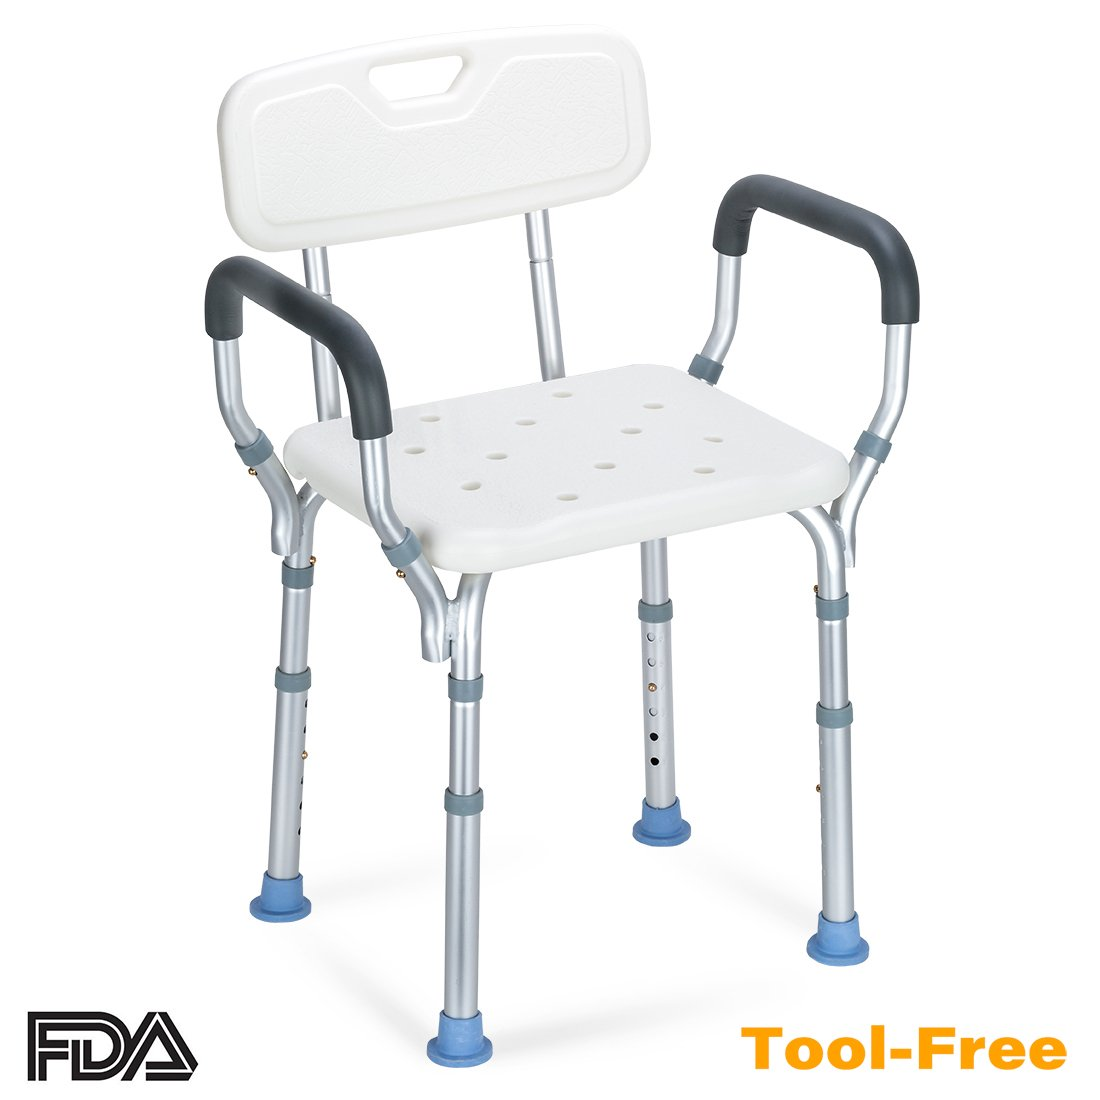 OasisSpace Heavy Duty Shower Chair with Back - Bathtub Chair with Arms for Handicap, Disabled, Seniors & Elderly - Adjustable Medical Bath Seat Handles - Non Slip Tub Safety by OasisSpace